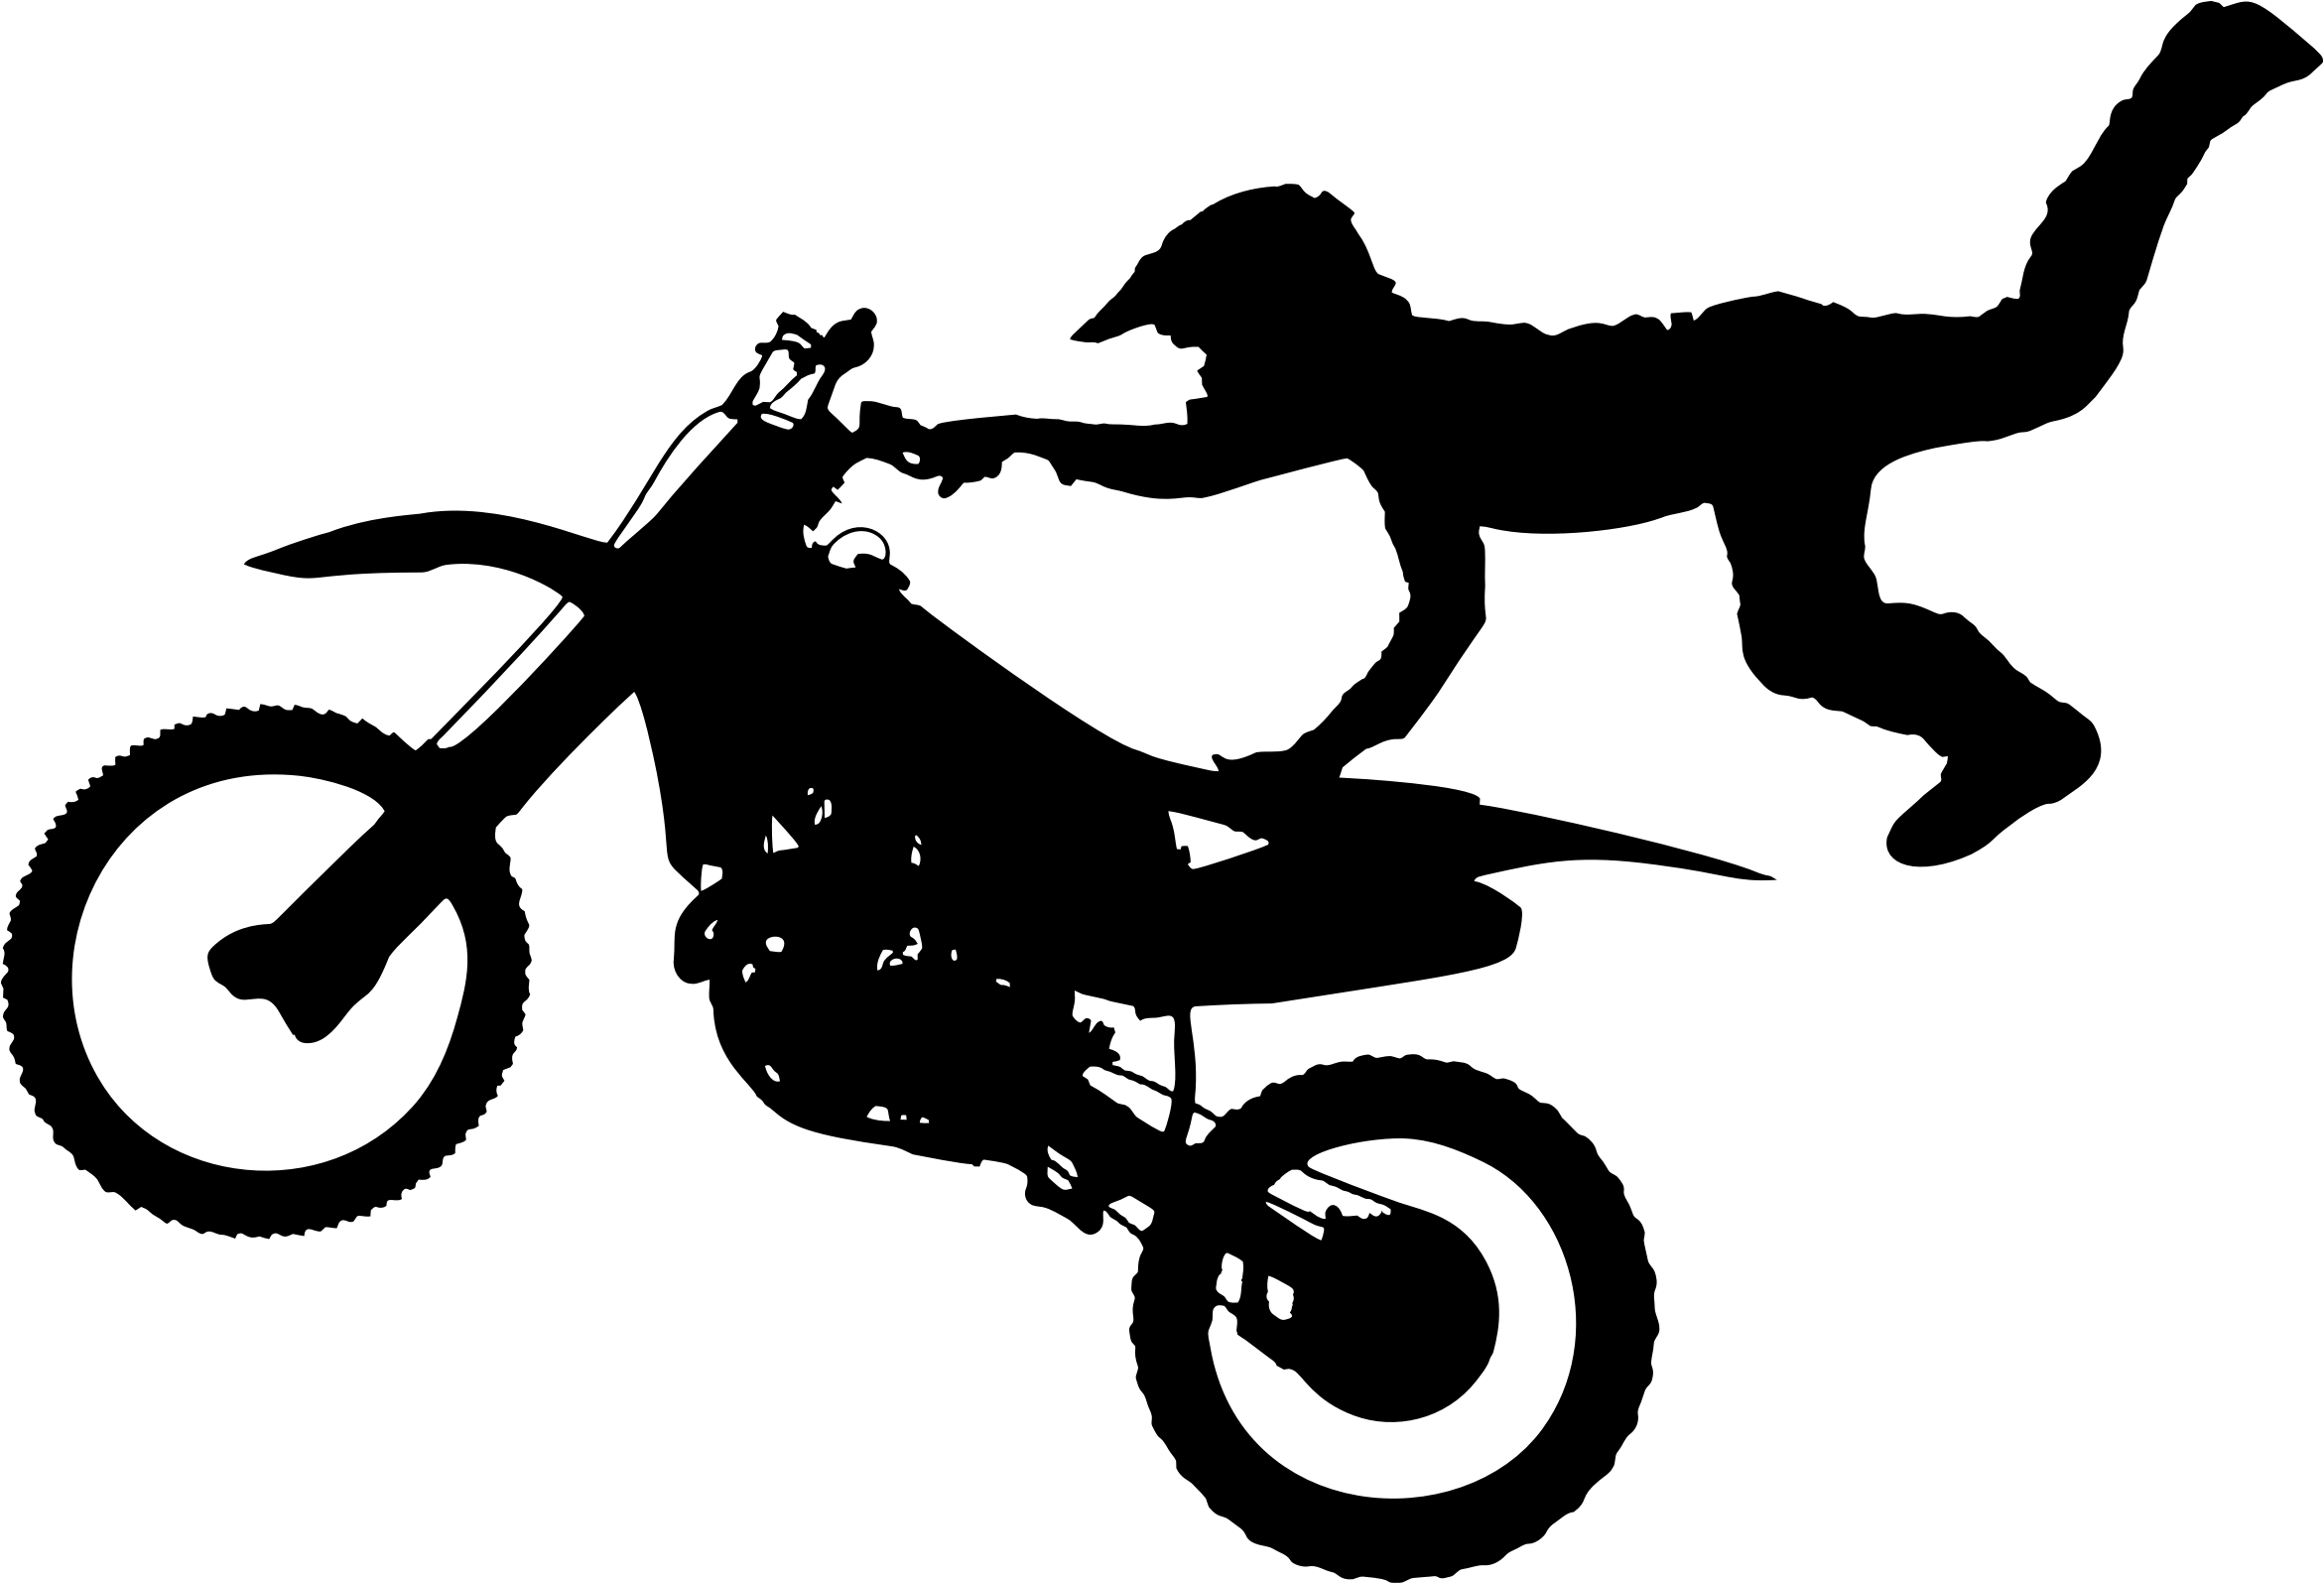 Motorcycle Clipart Png Motorbike Rider Vector Best Seller Bicycle Review